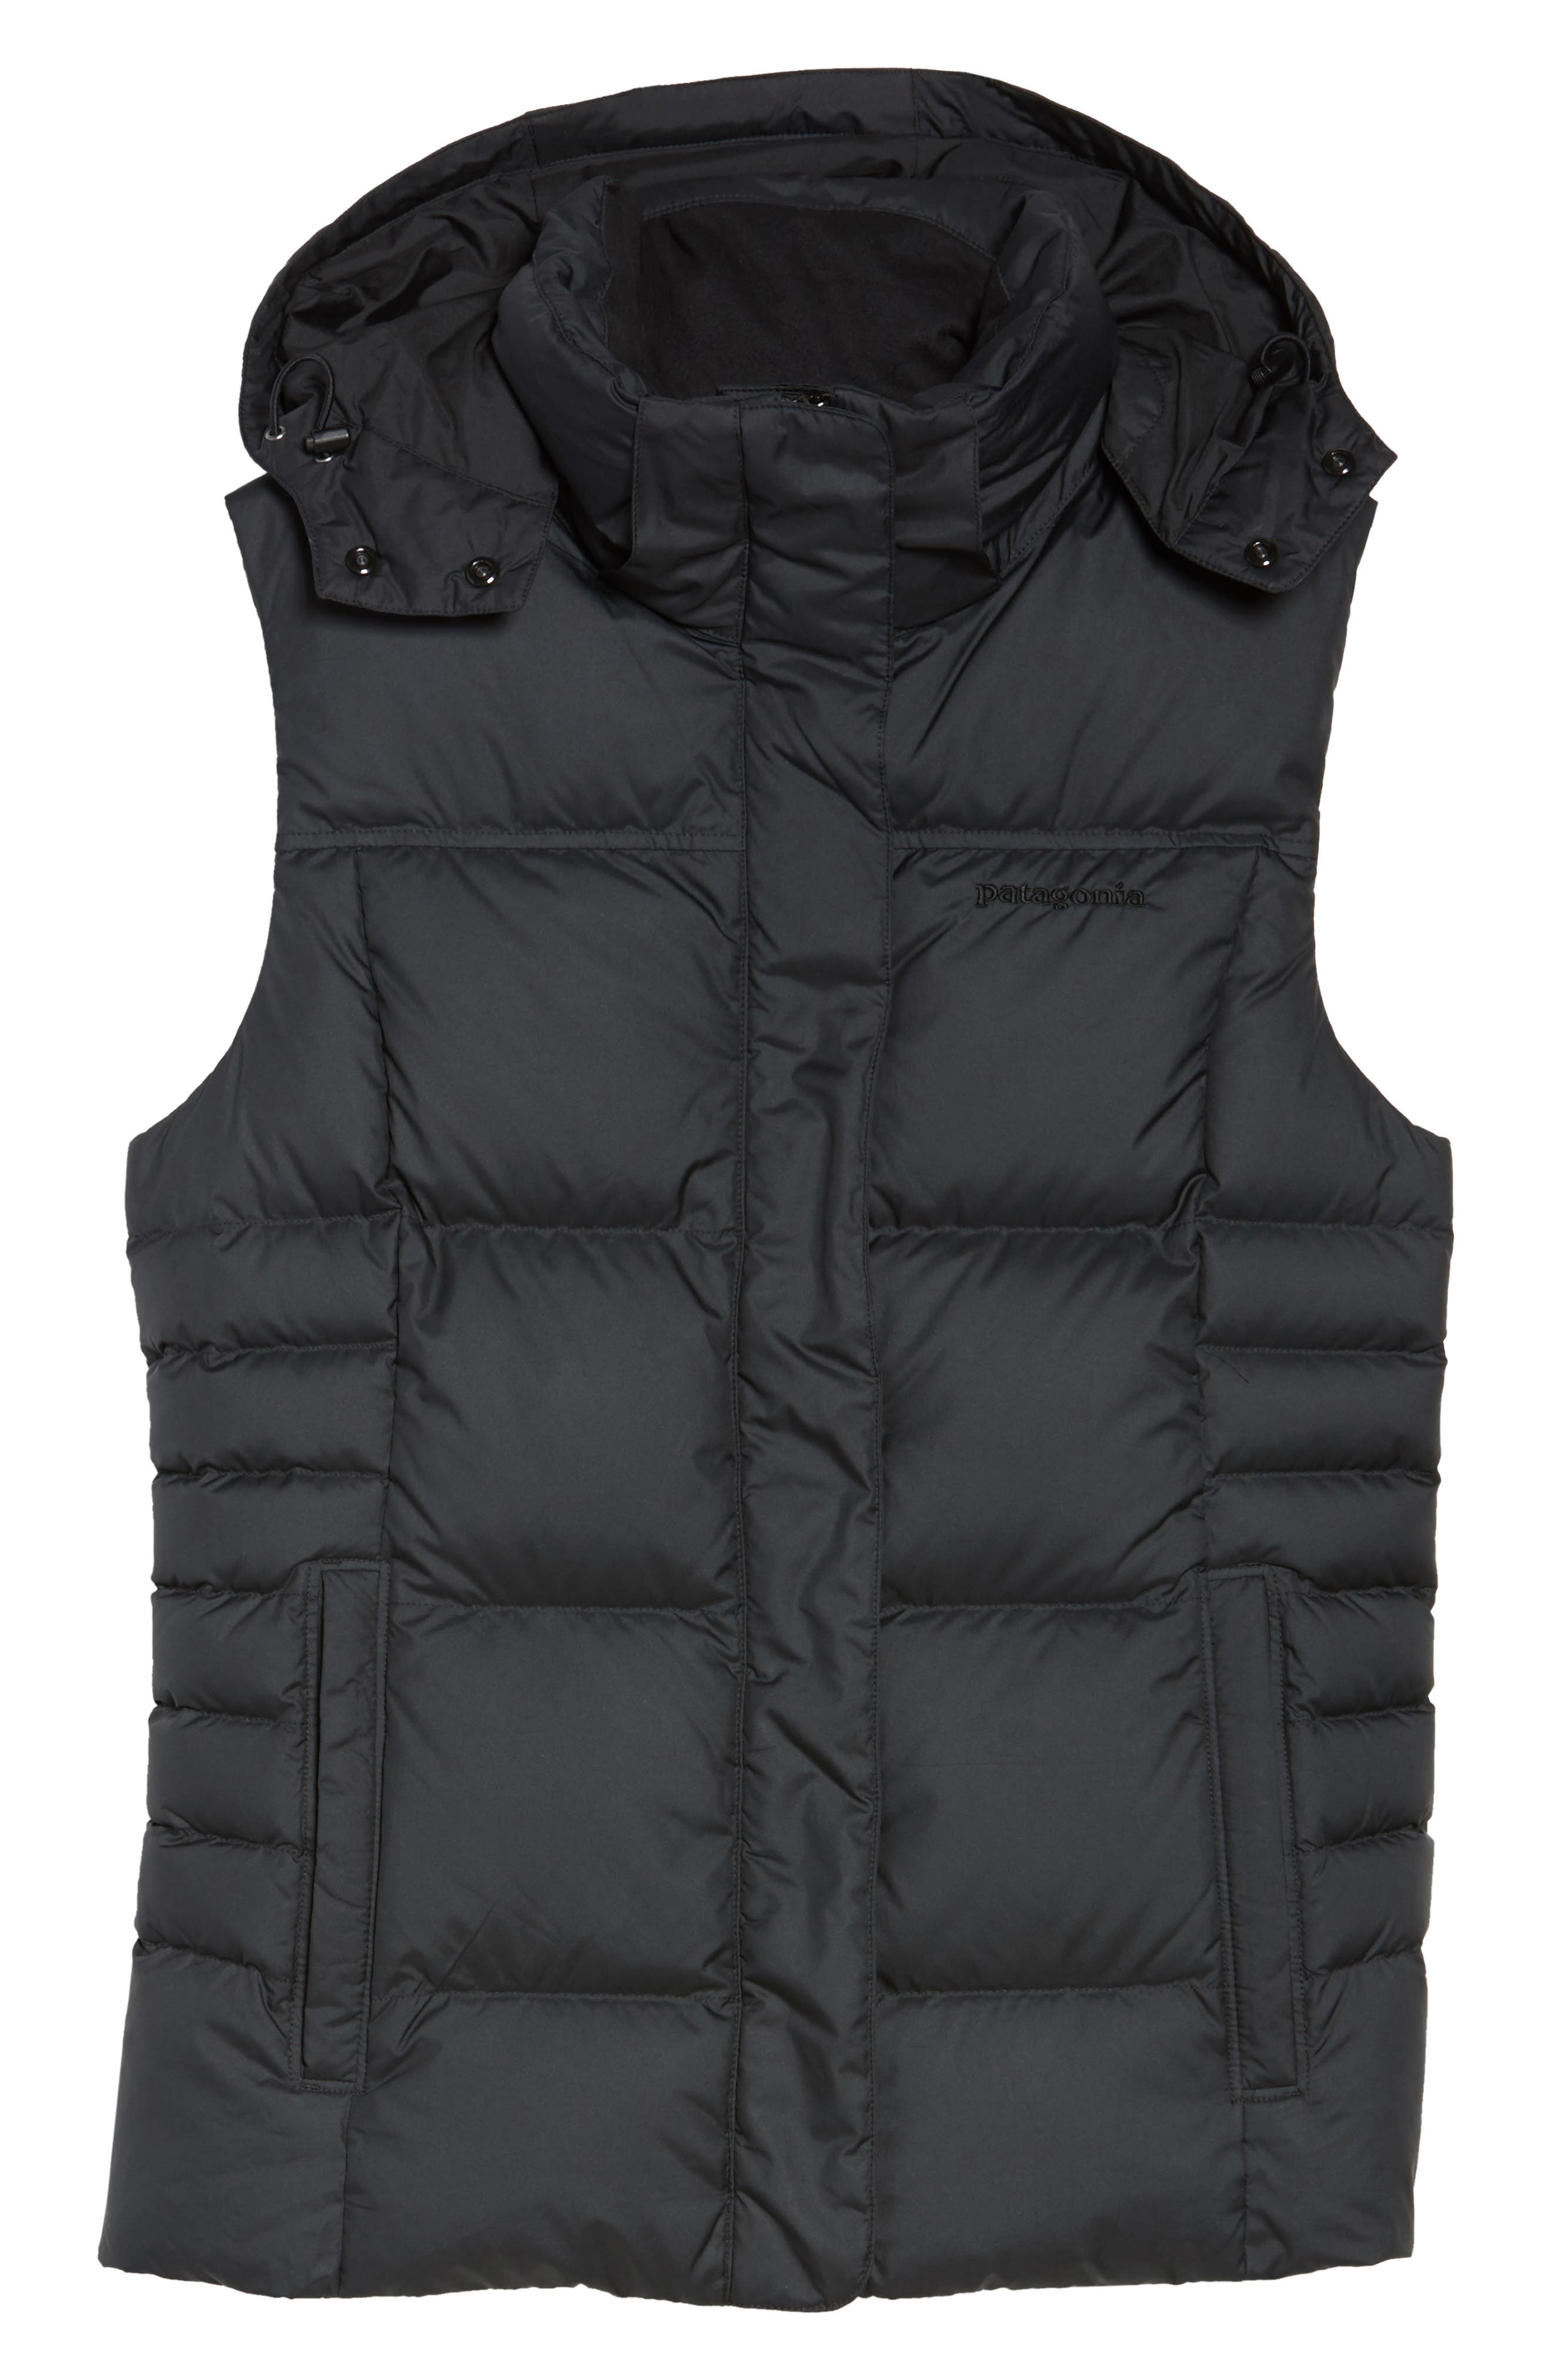 Down with It Hooded Down Vest,                             Alternate thumbnail 6, color,                             001